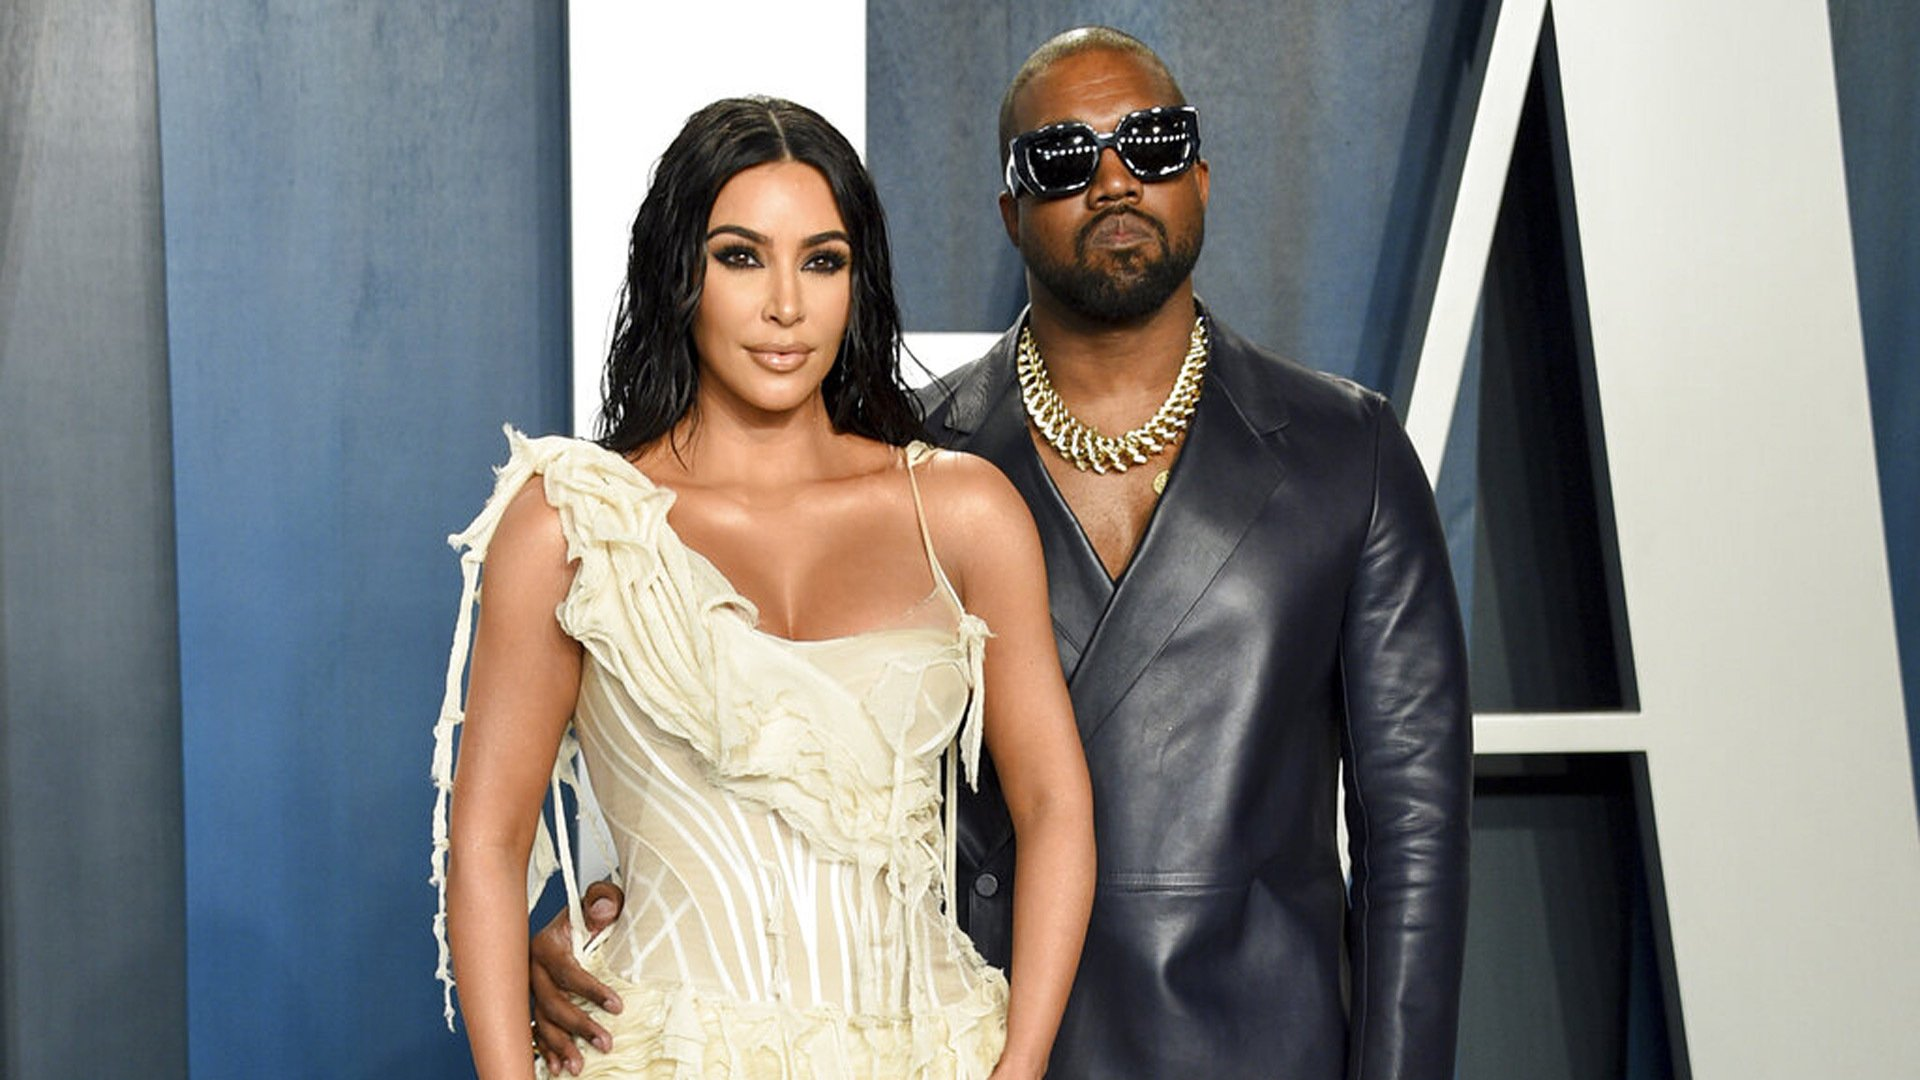 Kim Kardashian receives hologram of her father as 40th birthday present from Kanye West | WKRN News 2